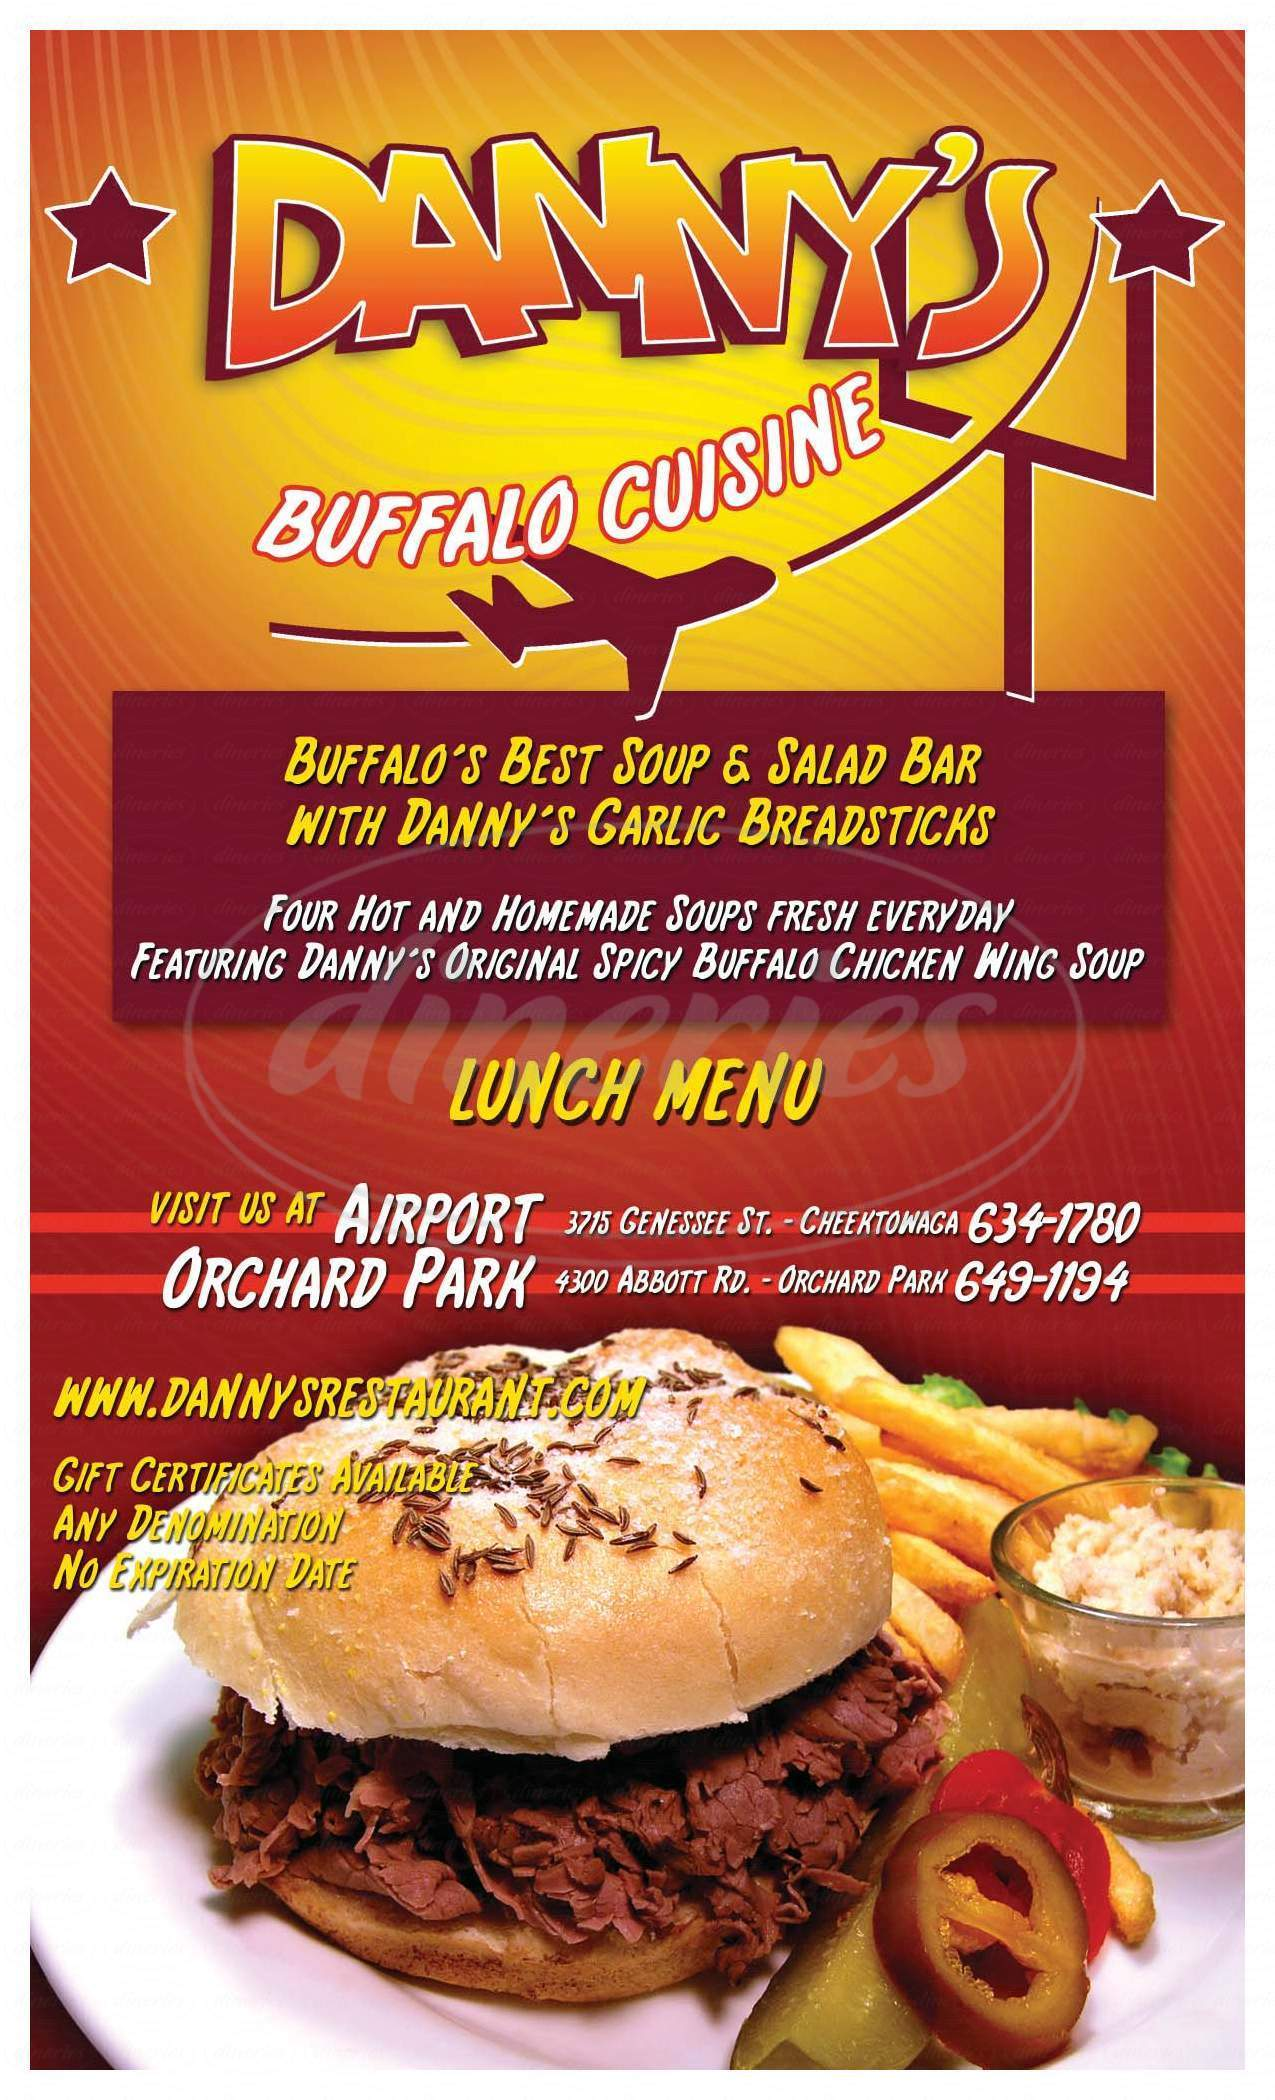 menu for Danny's Restaurant